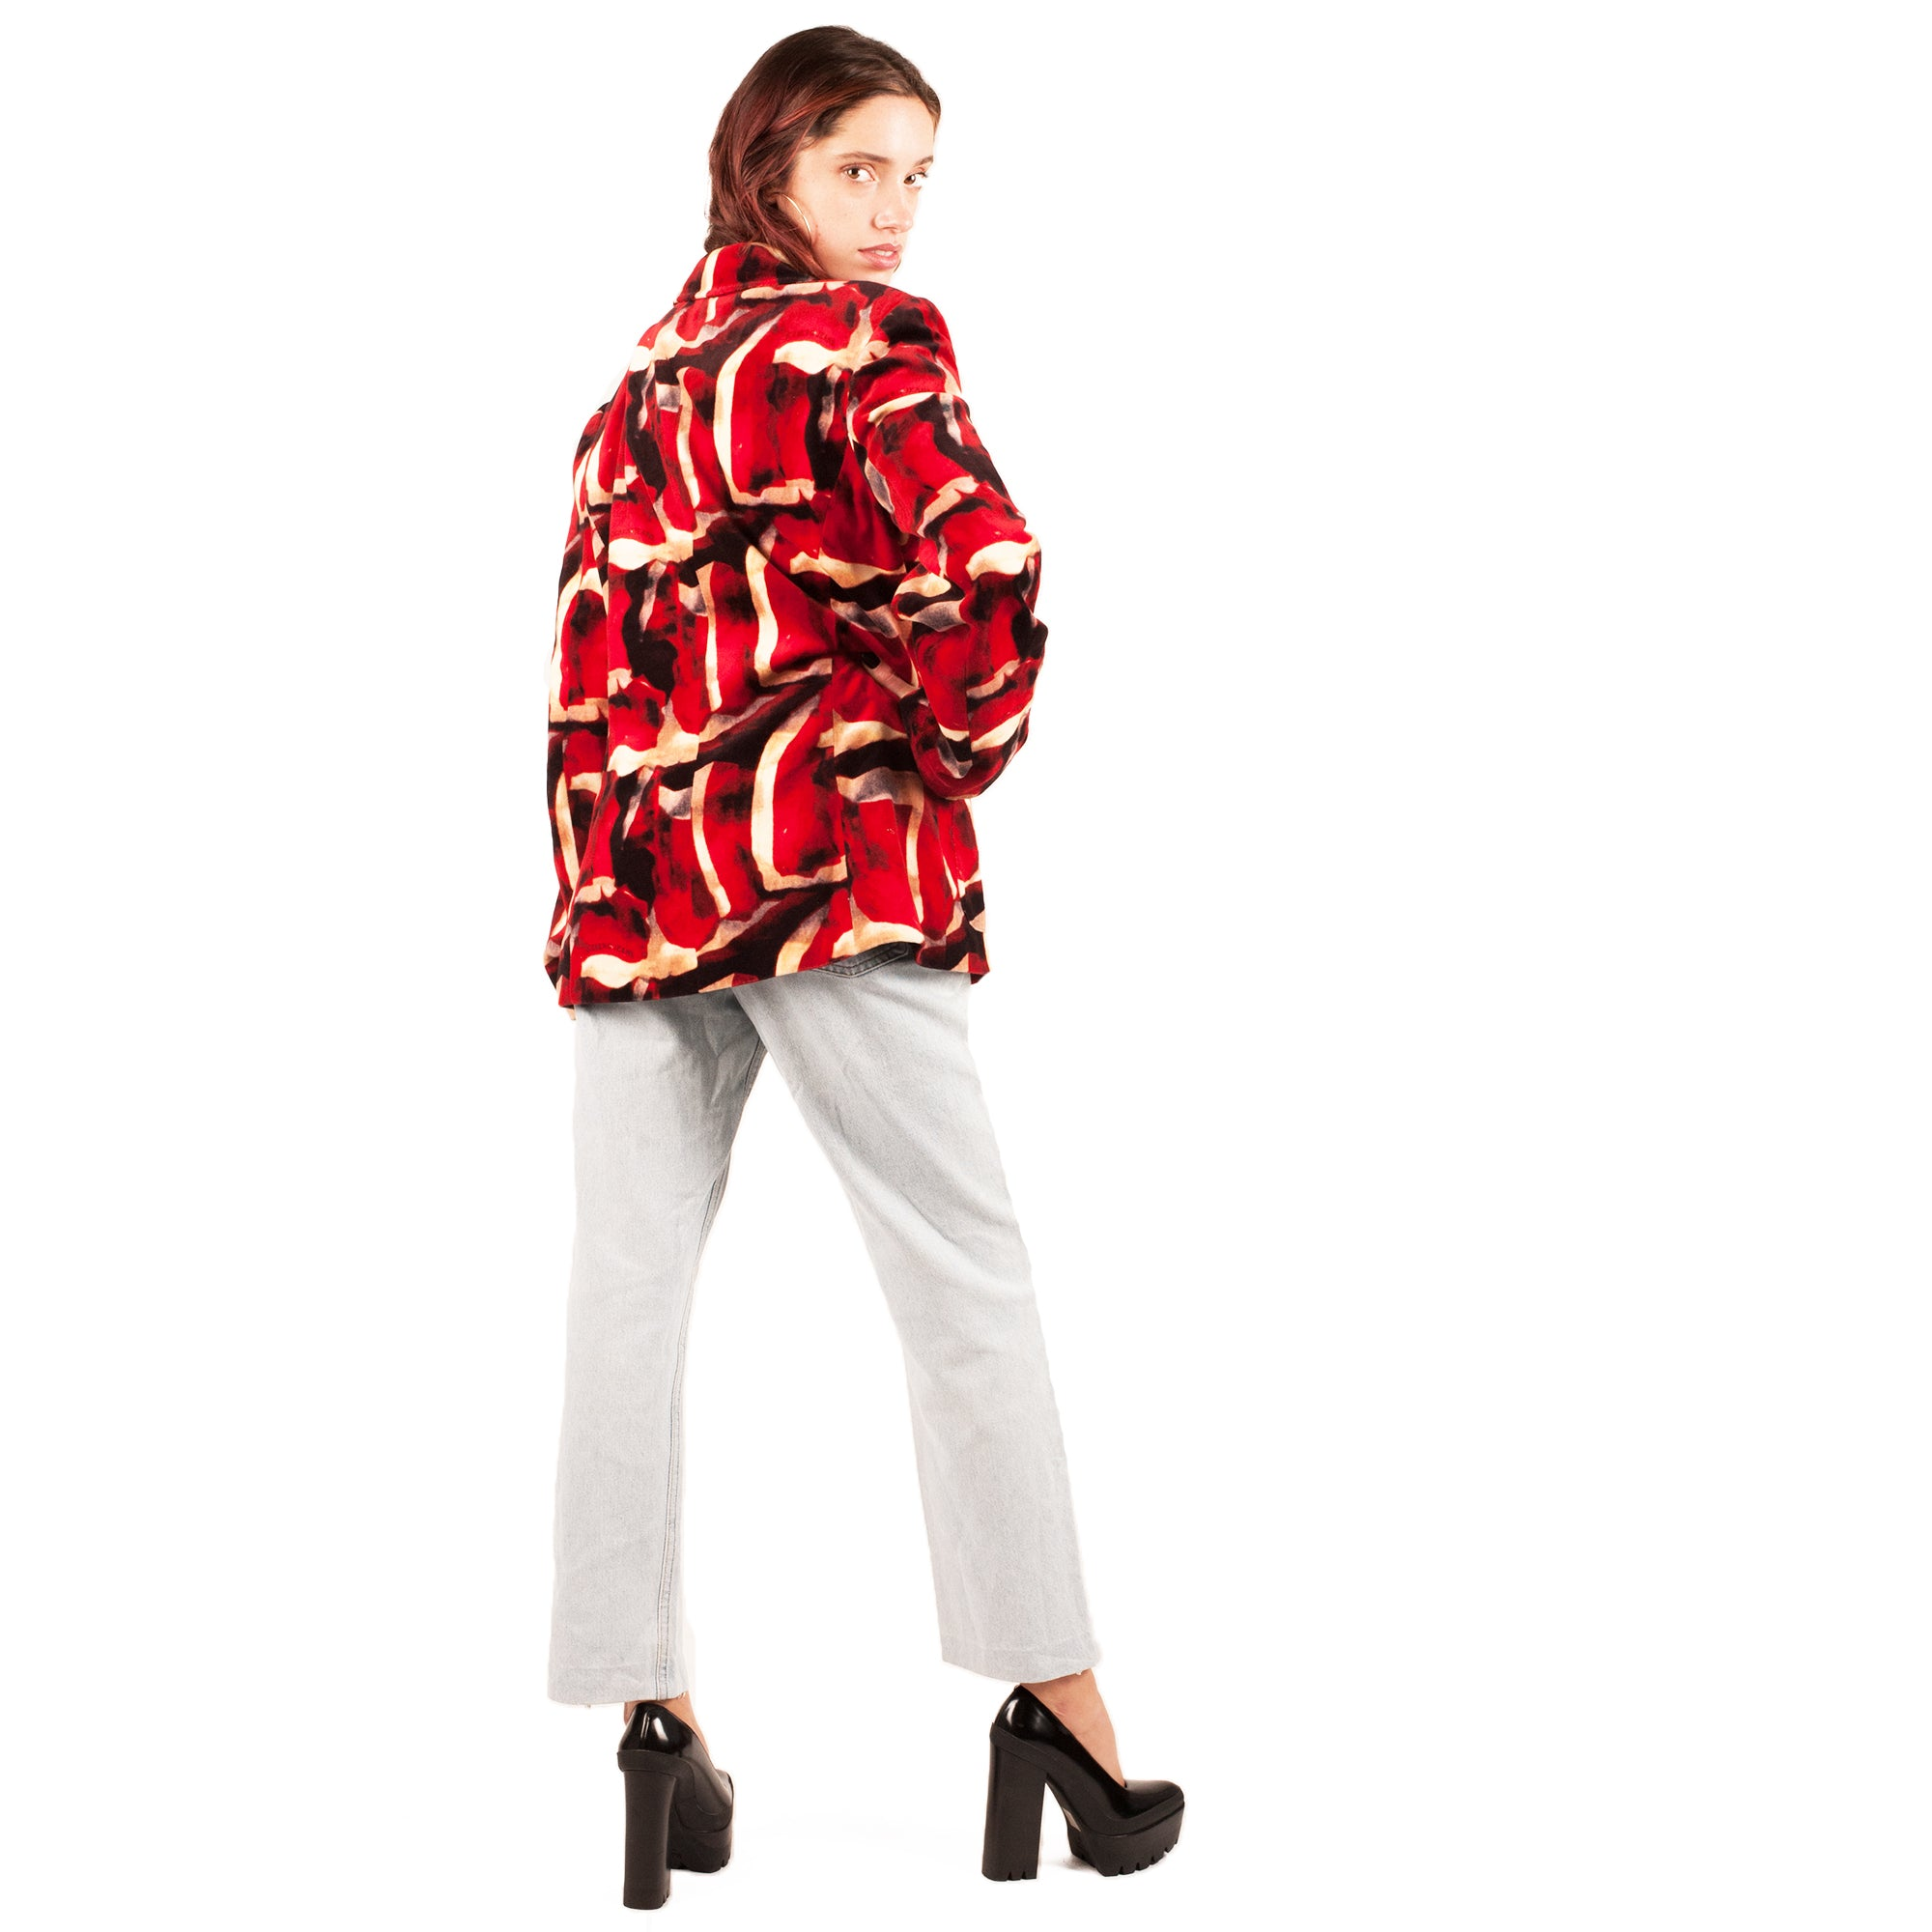 Iceberg Velvet Blazer (Multi) UK 8-10